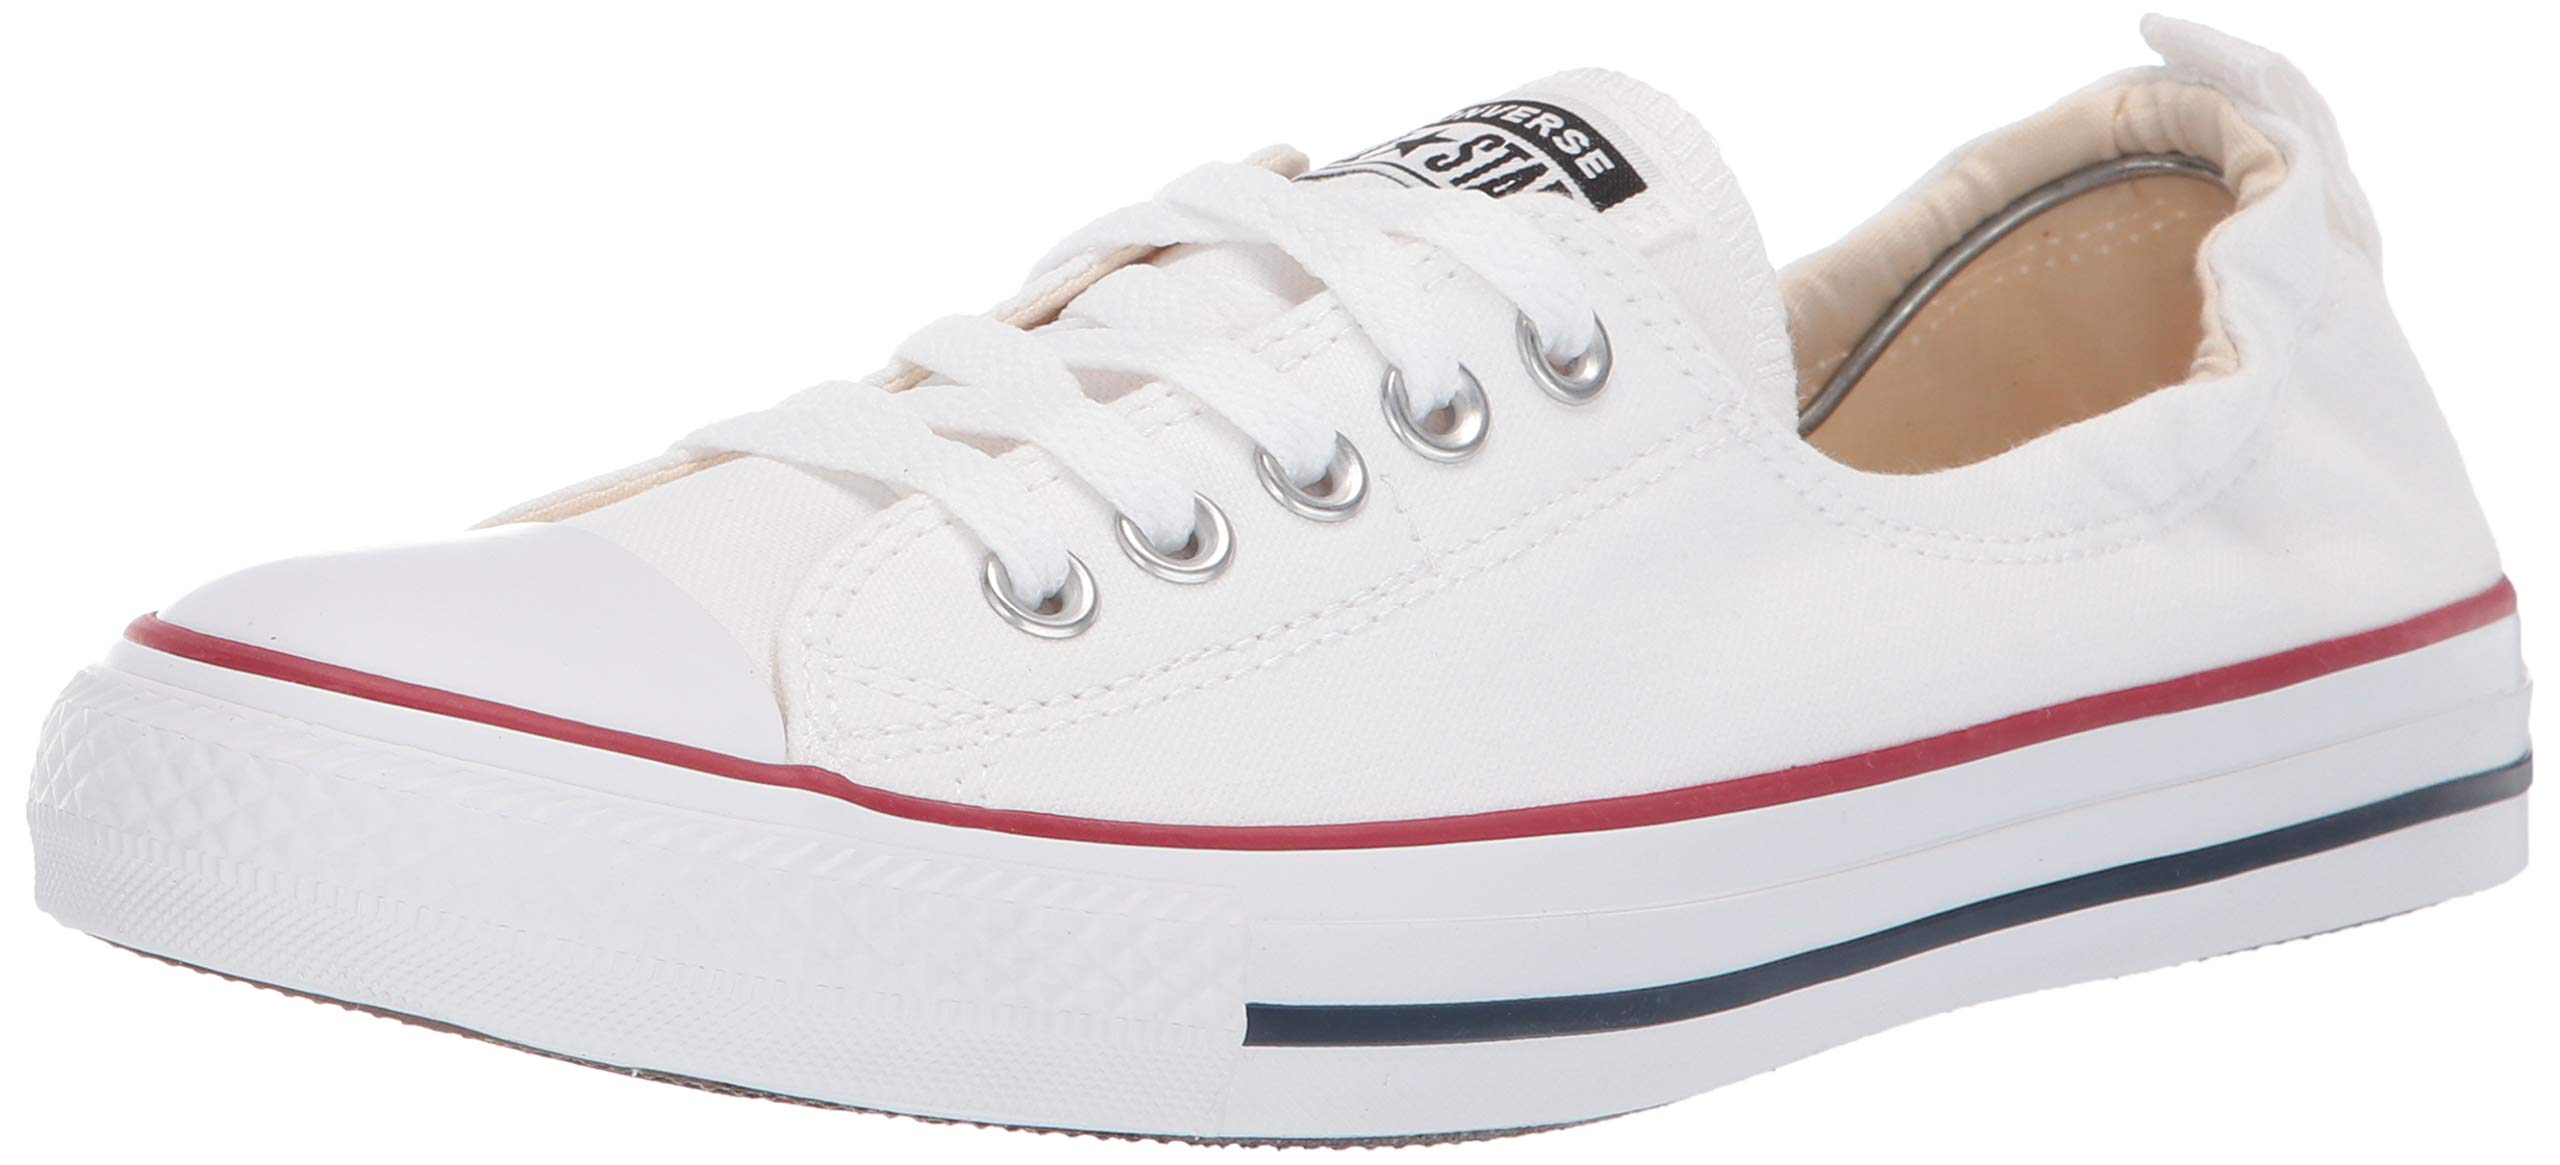 Converse Chuck Taylor All Star Shoreline White Lace-Up Sneaker - 8 B - Medium by Converse